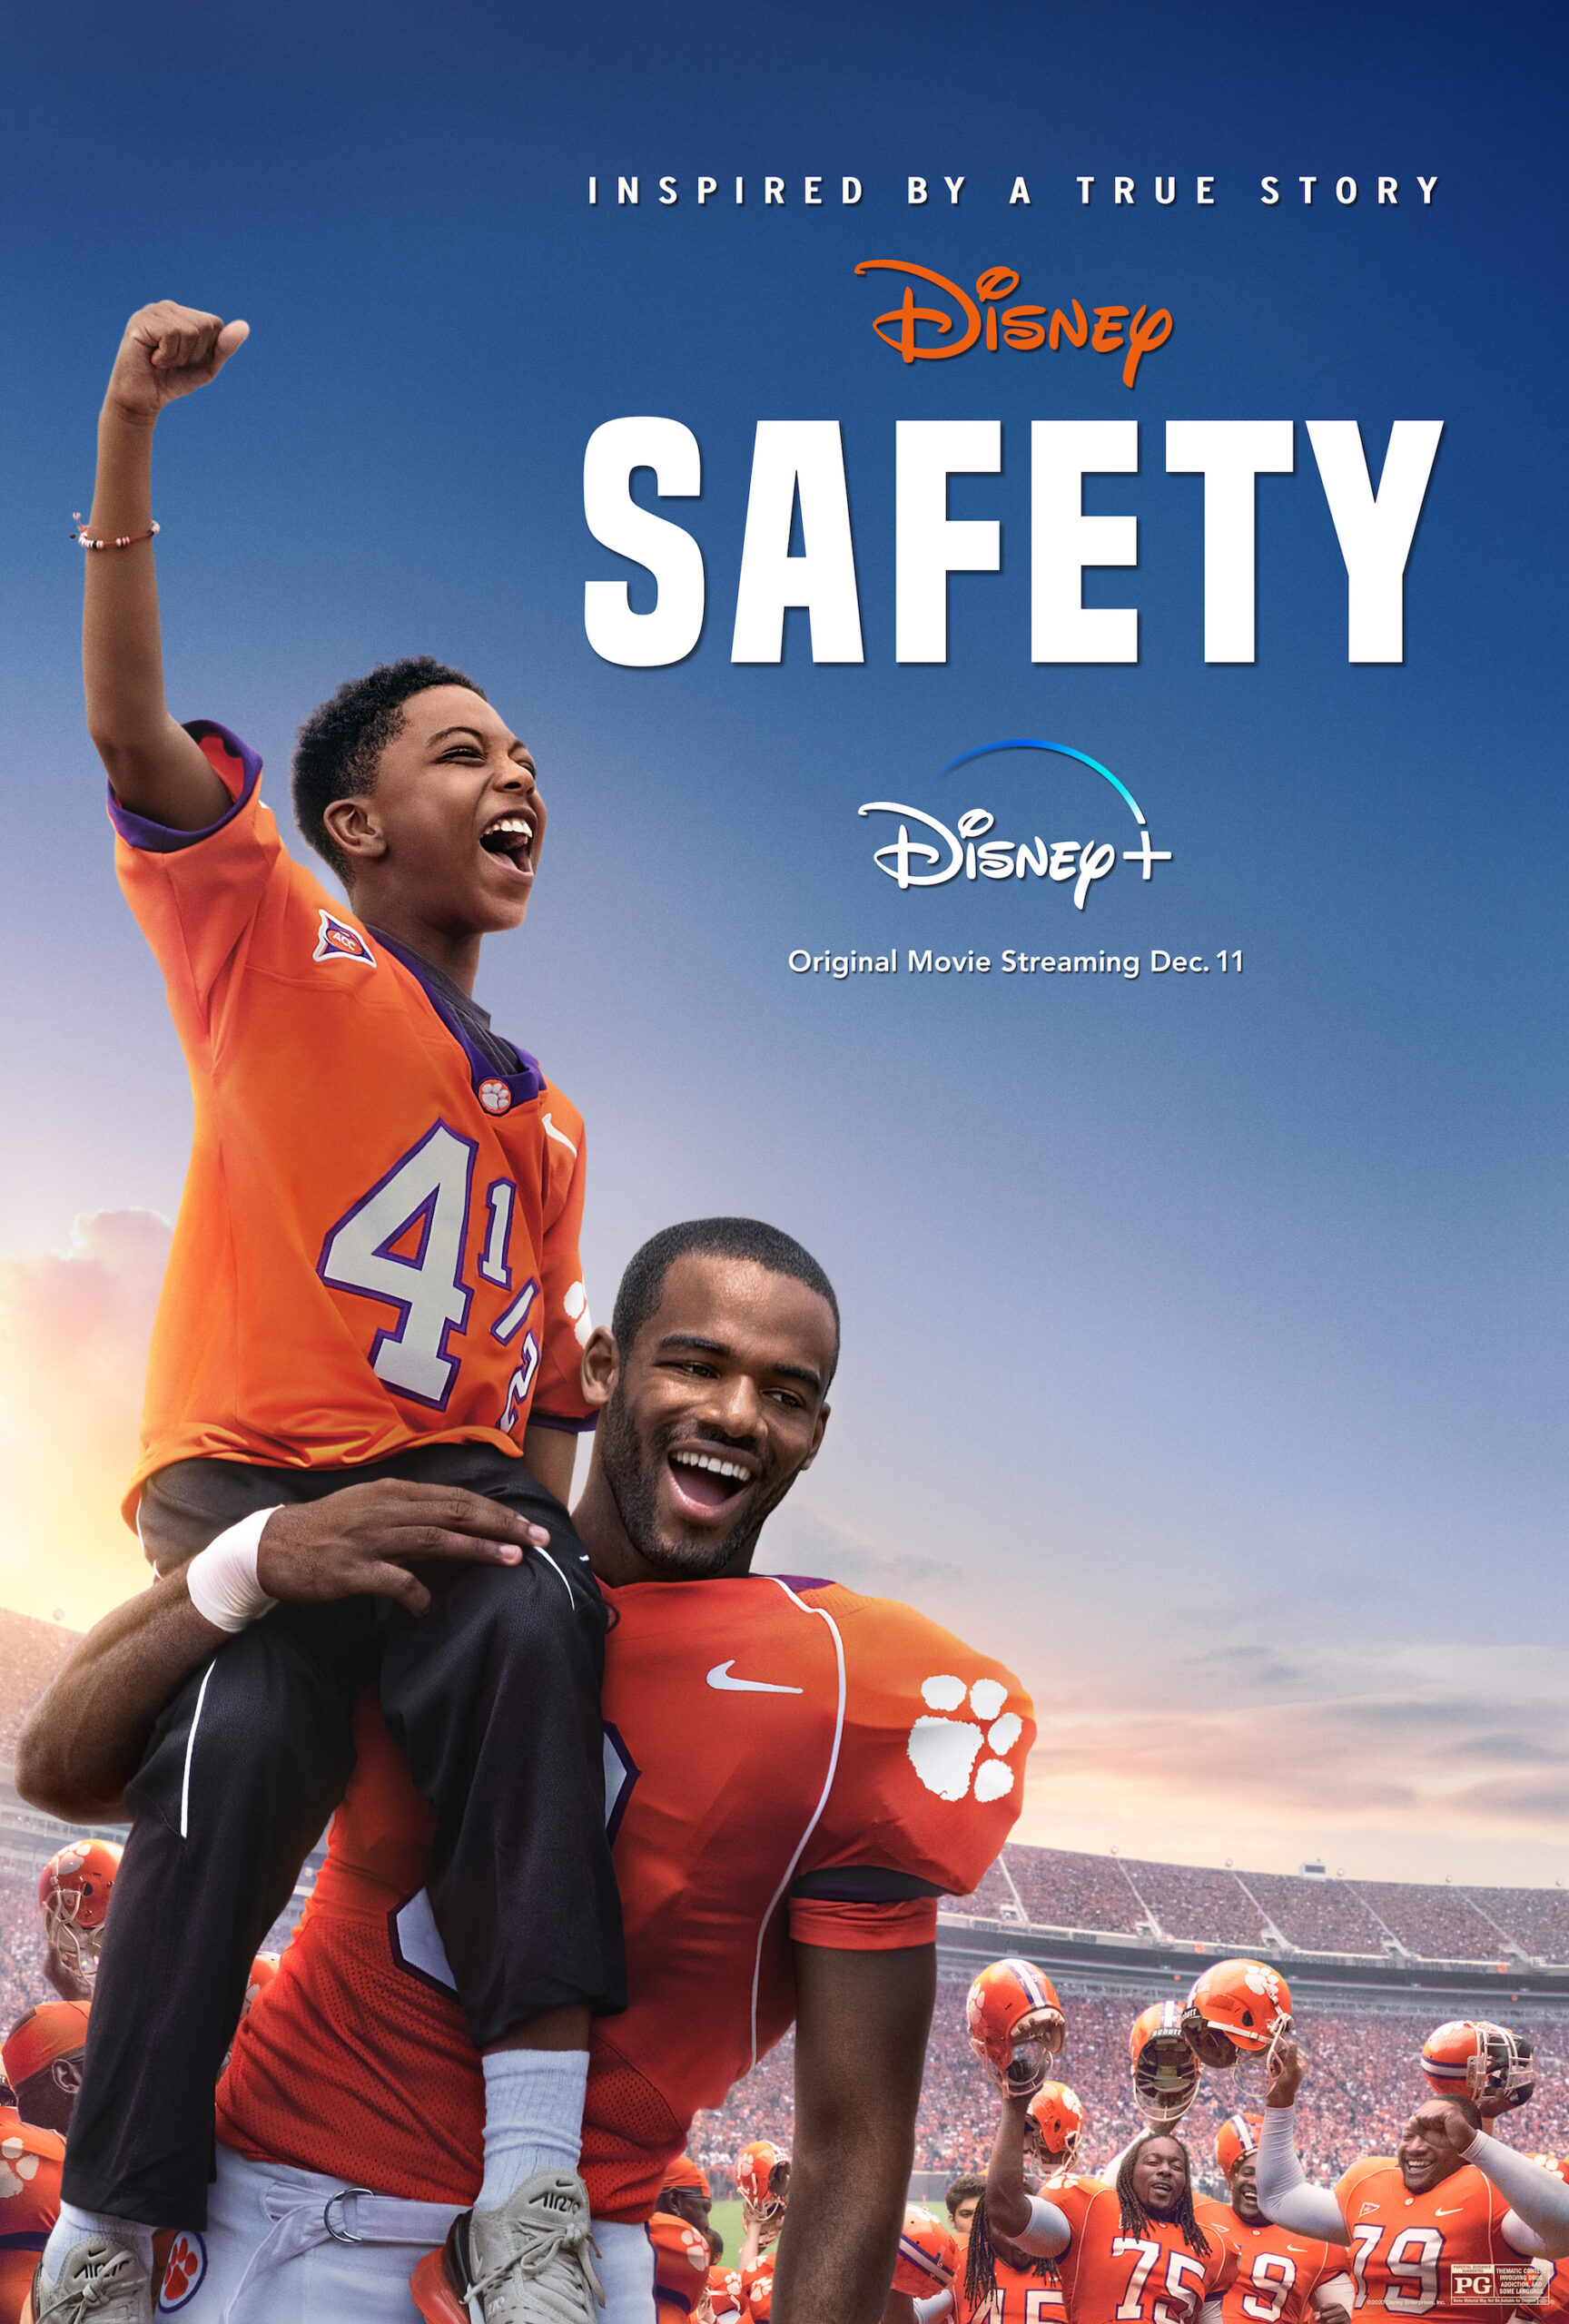 Wondering if you should watch Safety on Disney+ as a family? This non-sporty mom is giving you my opinion on who this movie is perfect for!